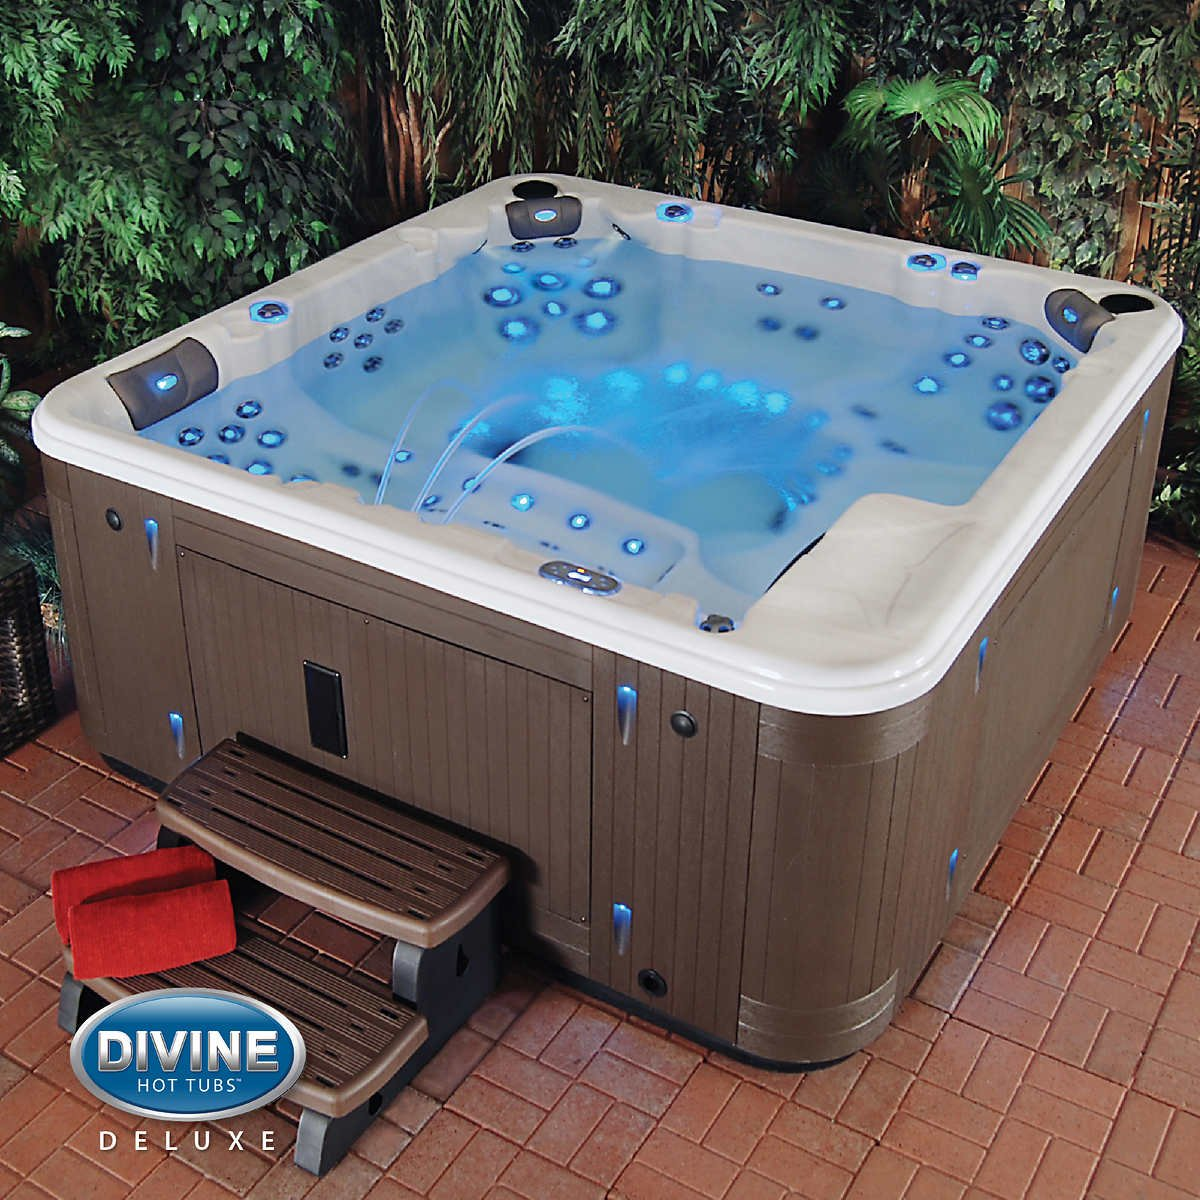 whirlpool corner new jet small tubs for rectangular air and divine jets with bathtub bathrooms bath bathtubs spa hot manufacturers tub